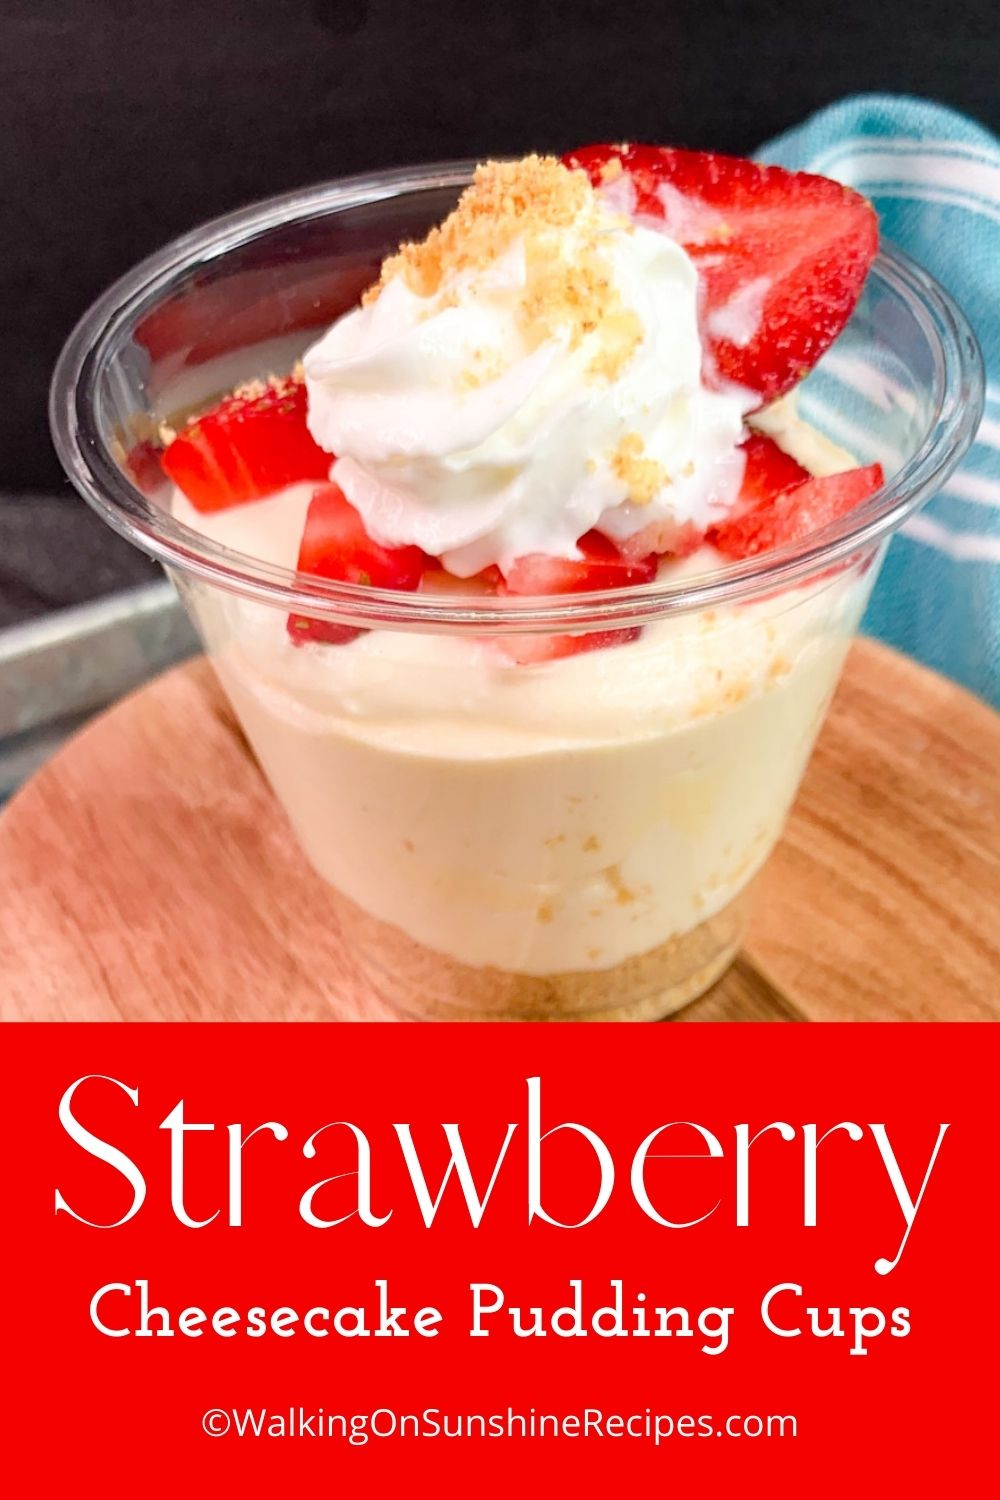 Cheesecake pudding cup topped with strawberries and whipped cream.